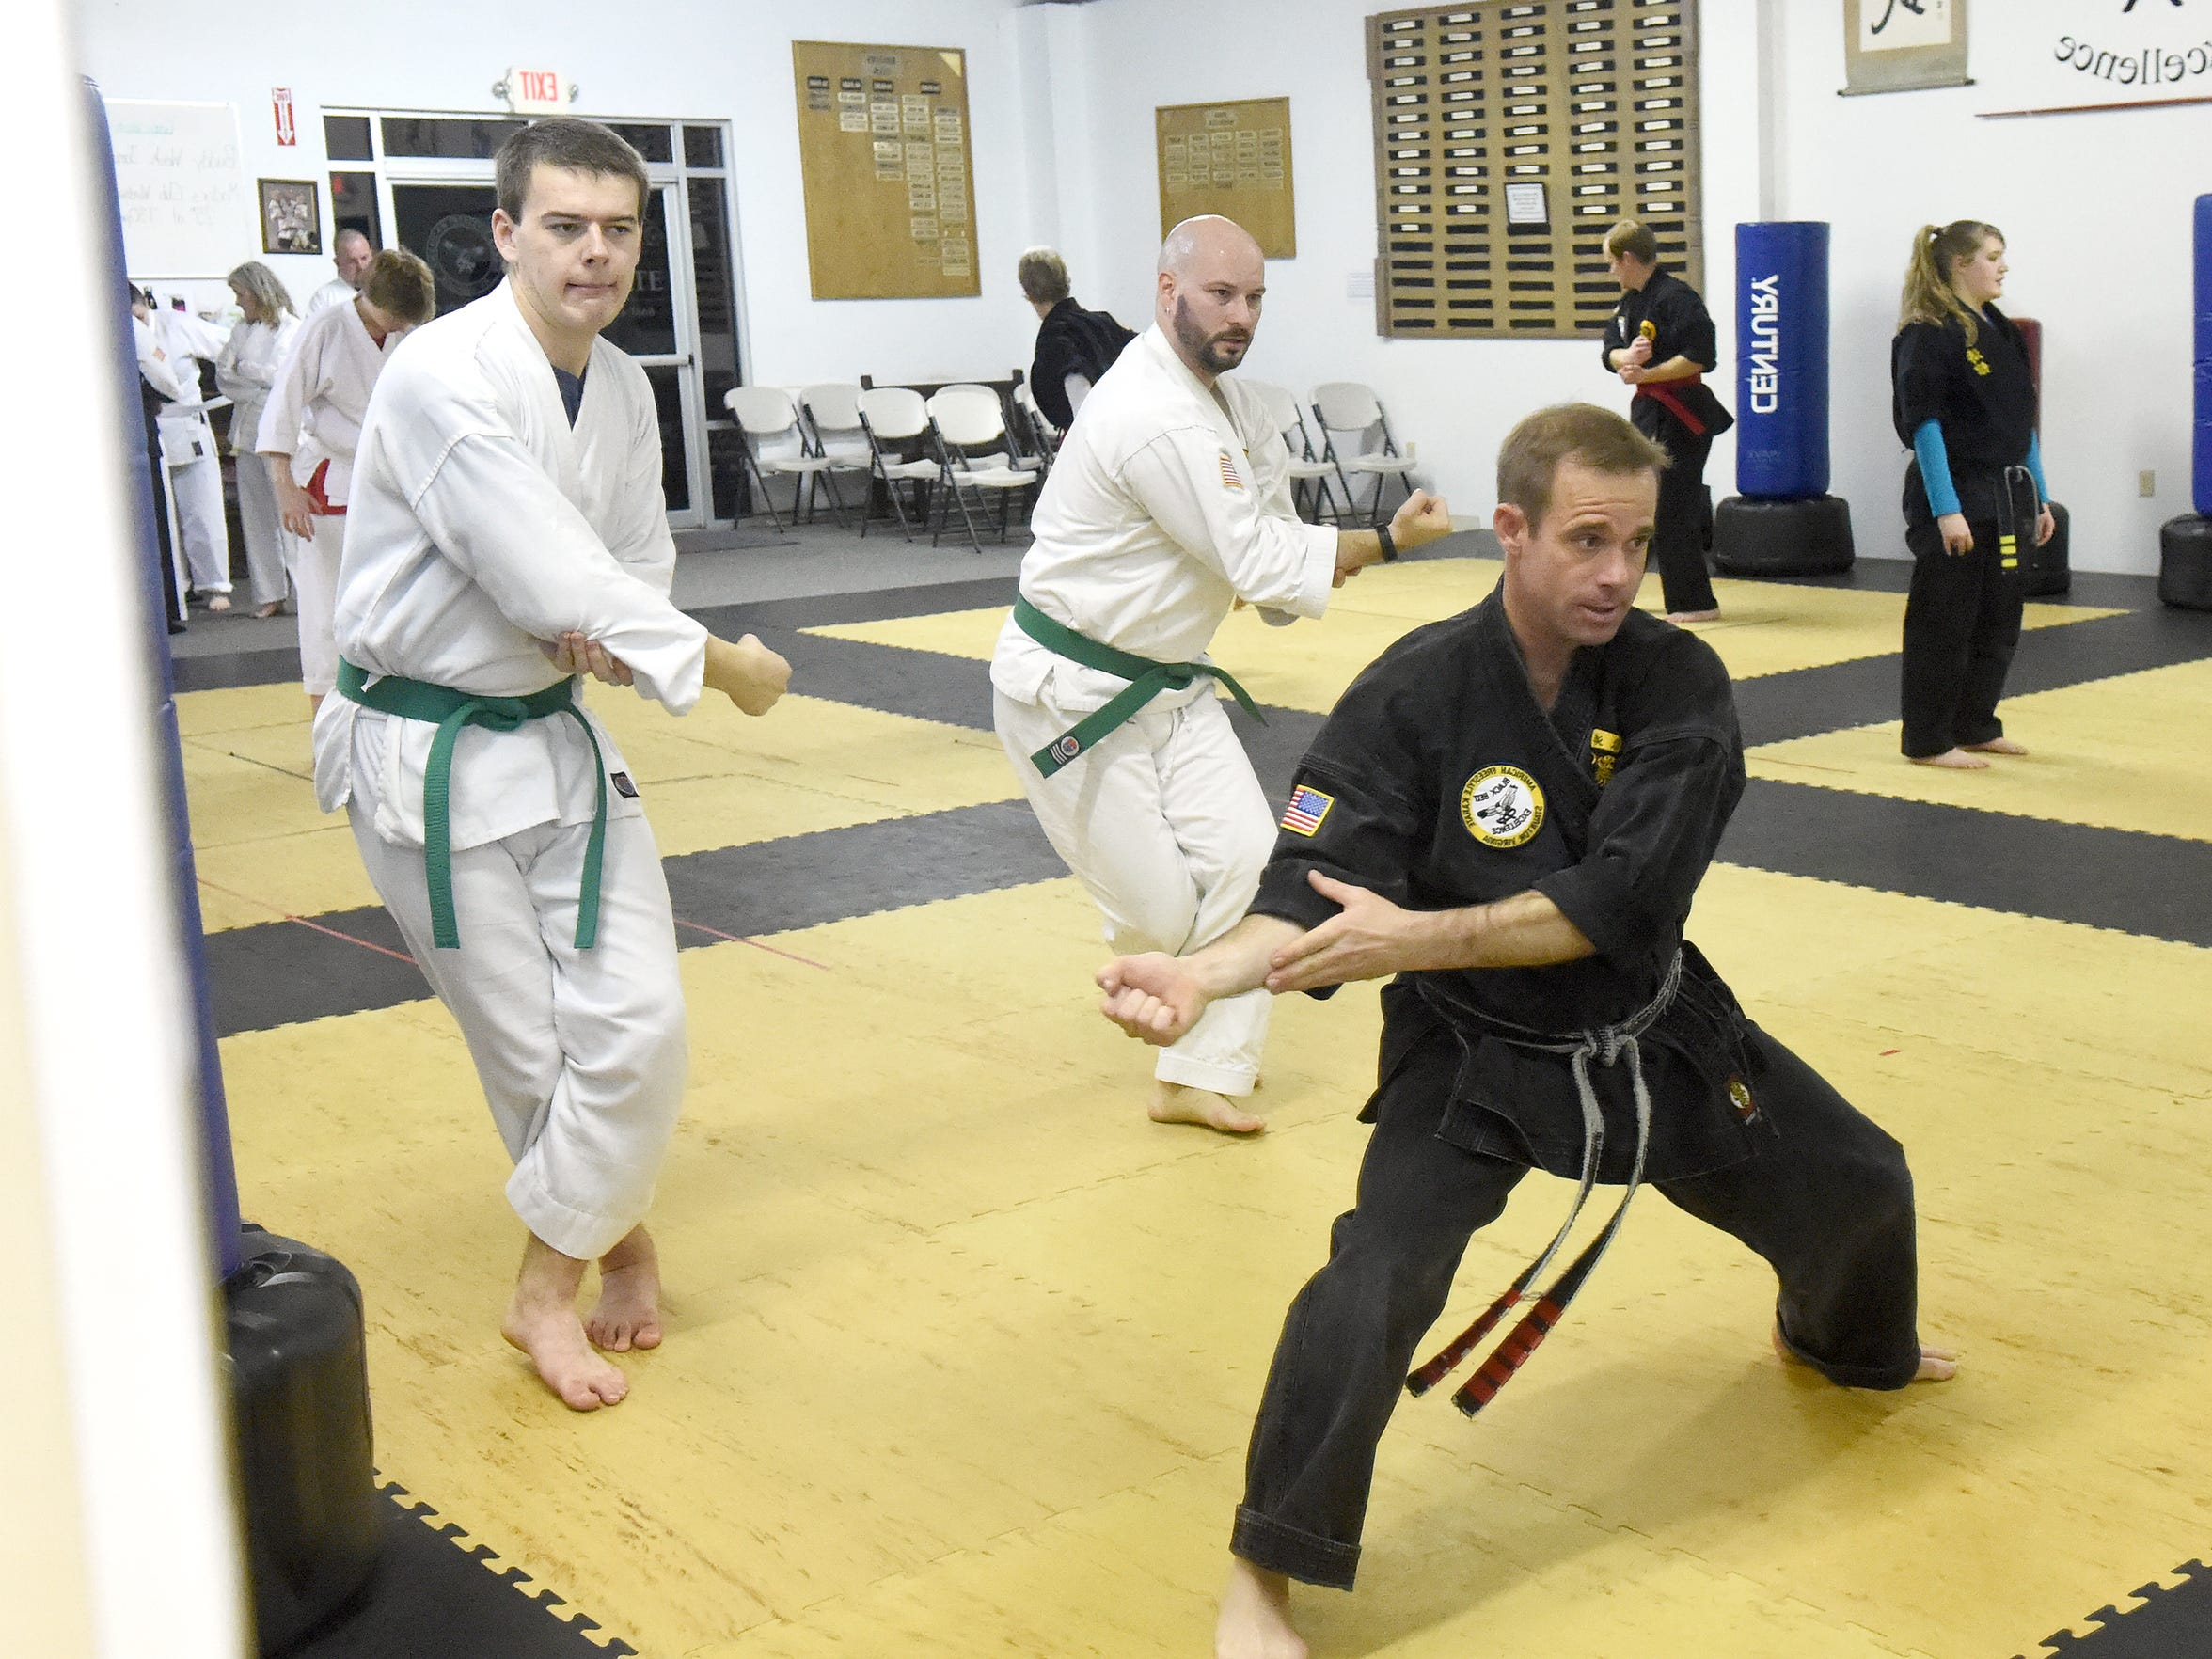 Shotokan green belts Justin Shaw and Jeremy West follow along with John Bowersox, owner of the studio and 3rd degree black belt in Shotokan, as they practice kata during a Shotokan class at the American Freestyle Karate studio in Staunton on Jan. 17, 2017. Bowersox also holds a 5th degree black belt in American Freestyle with West and Shaw holding brown belts.